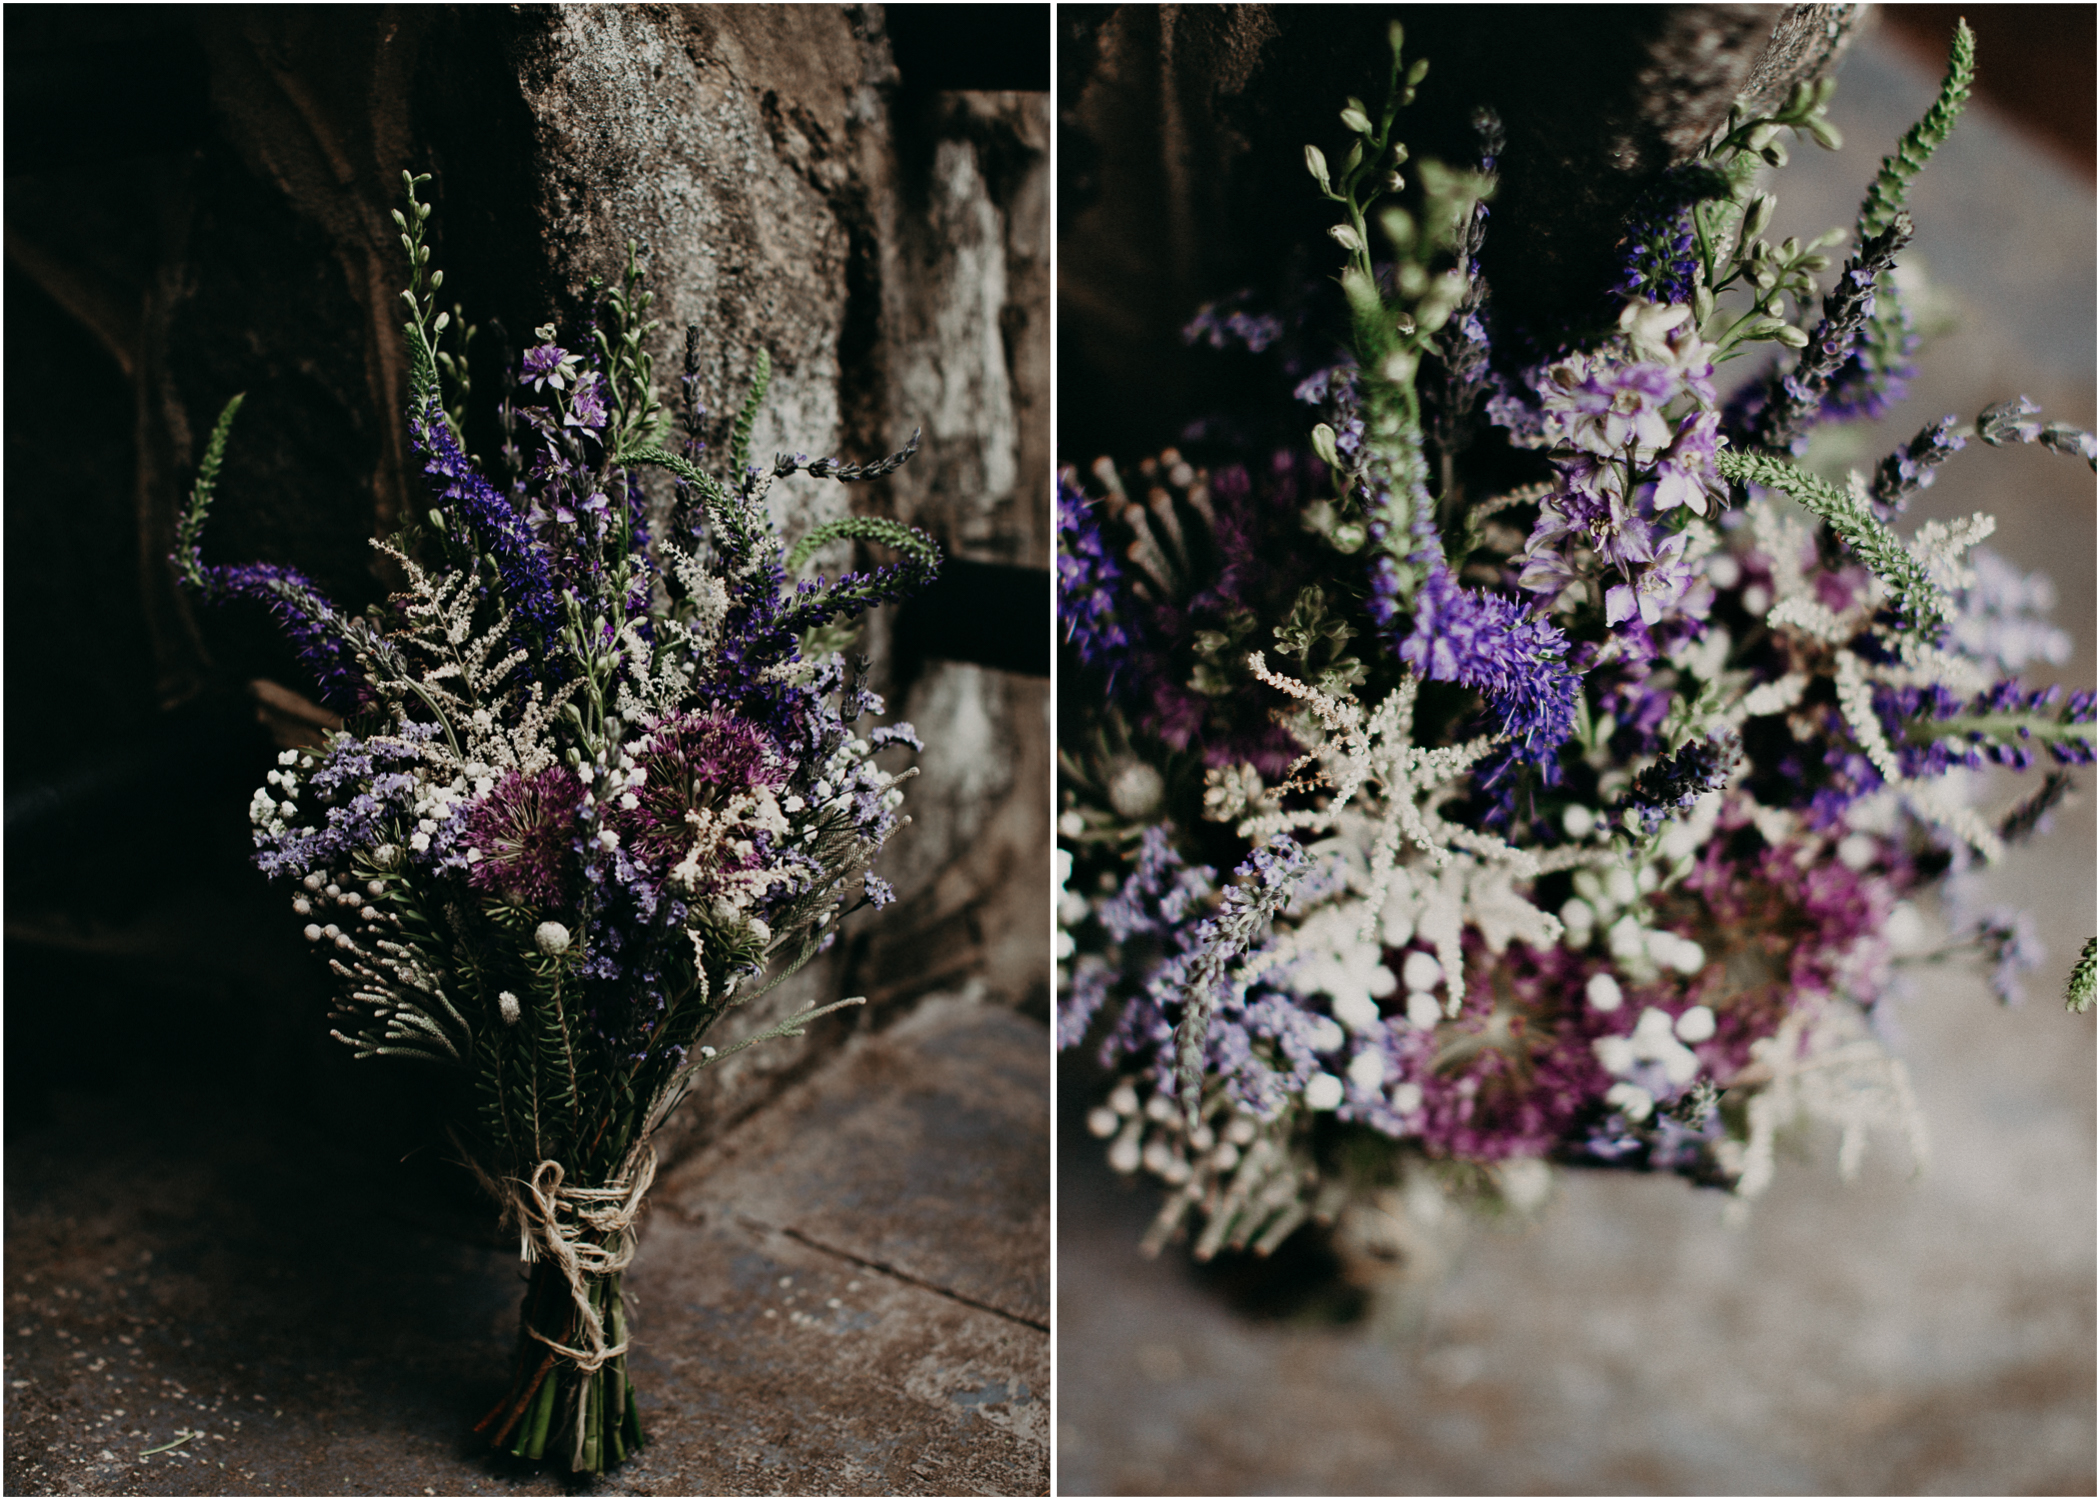 3 wedding flowers DIY lavendar flowers for weddings .jpg